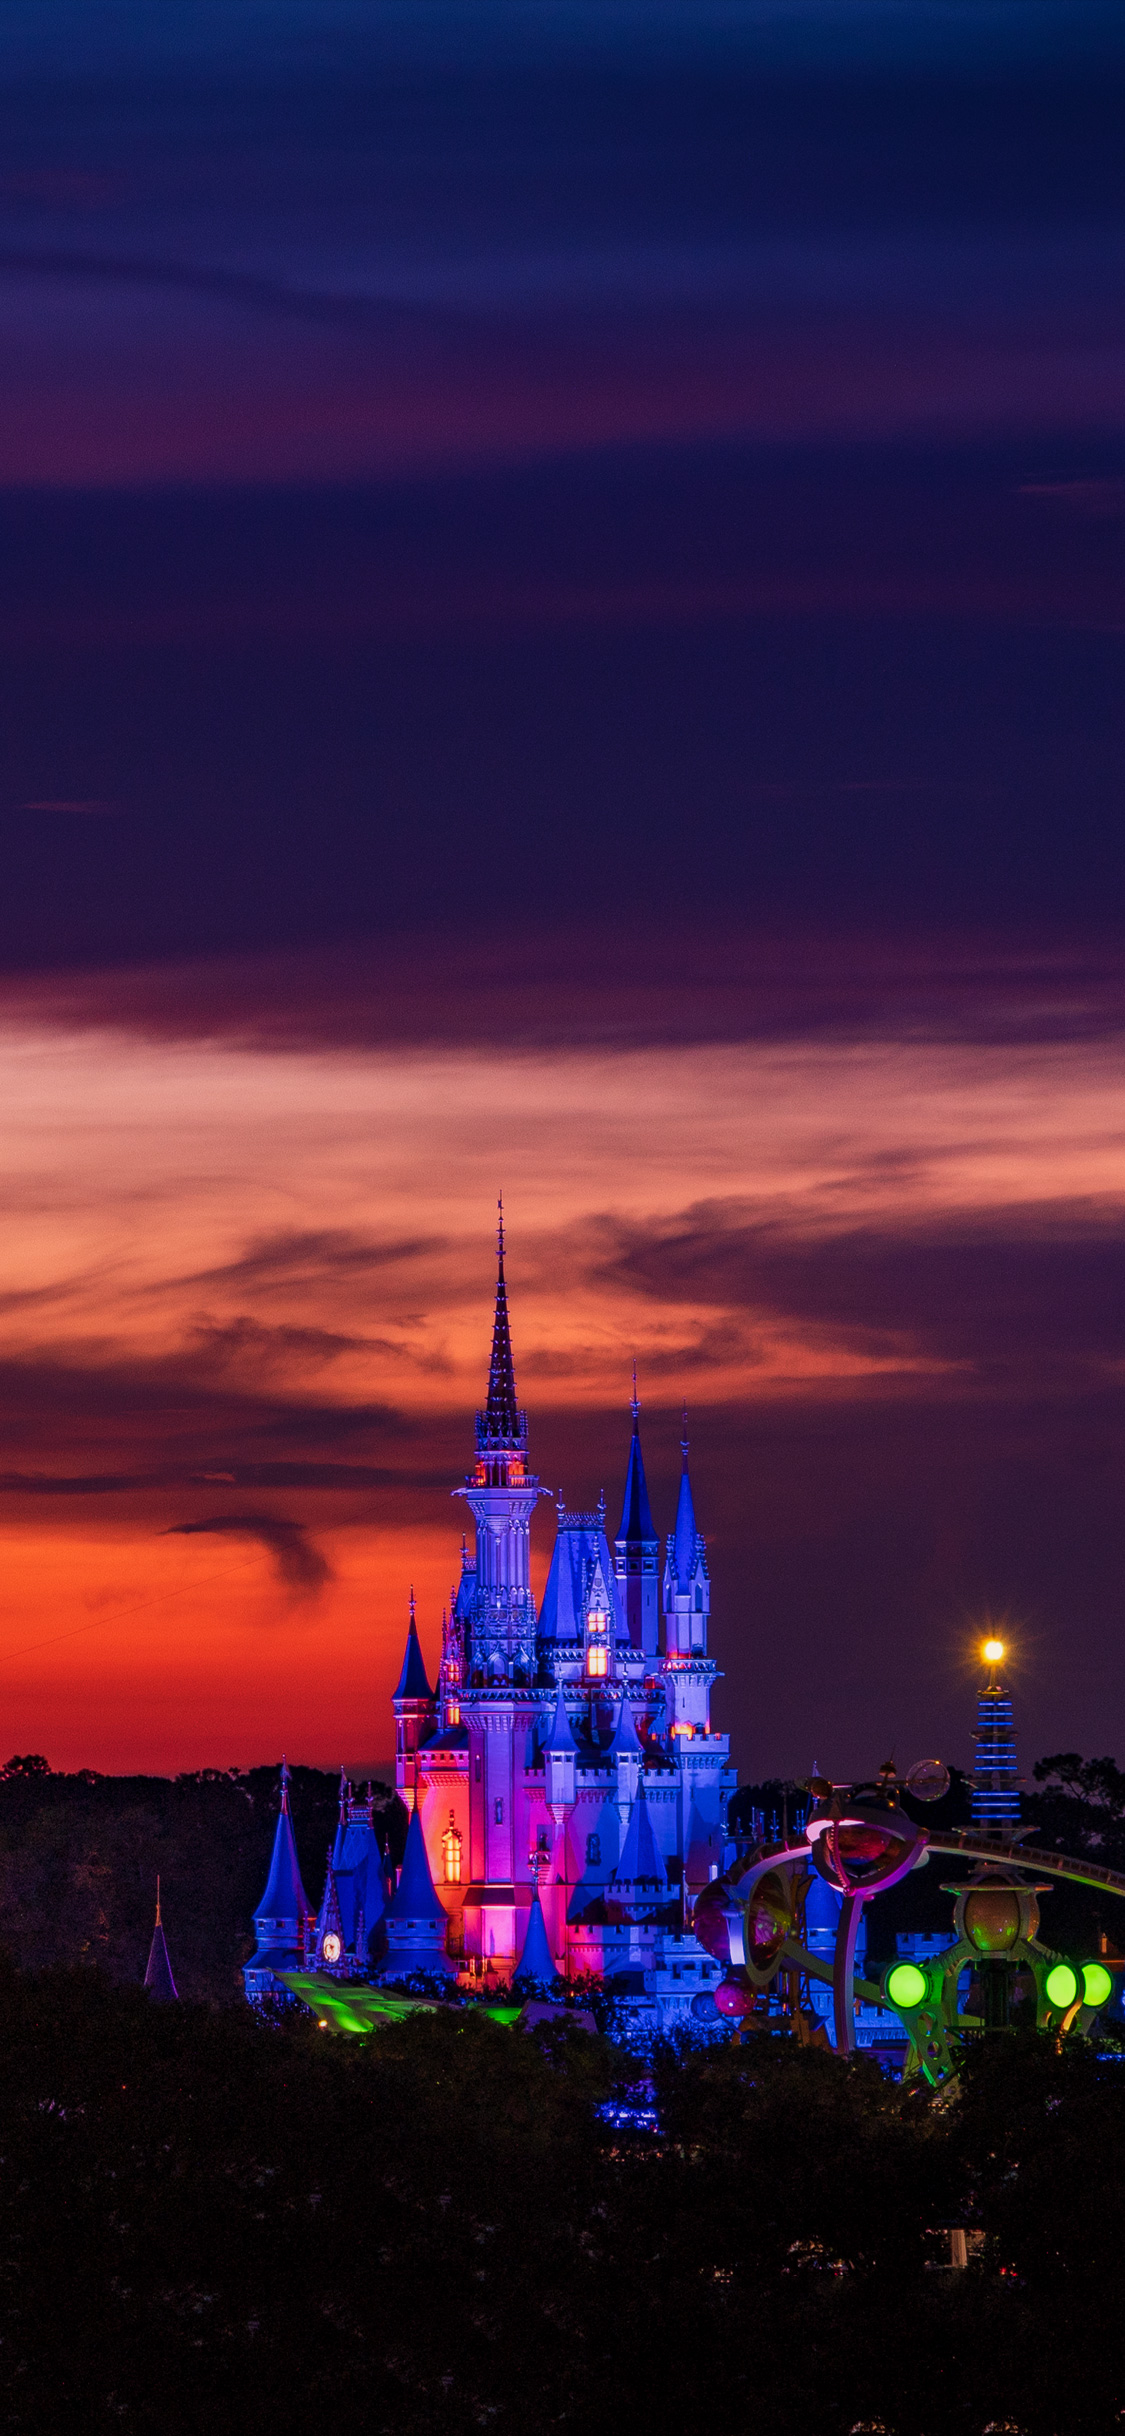 Free Disney Iphone Wallpapers Disney Tourist Blog